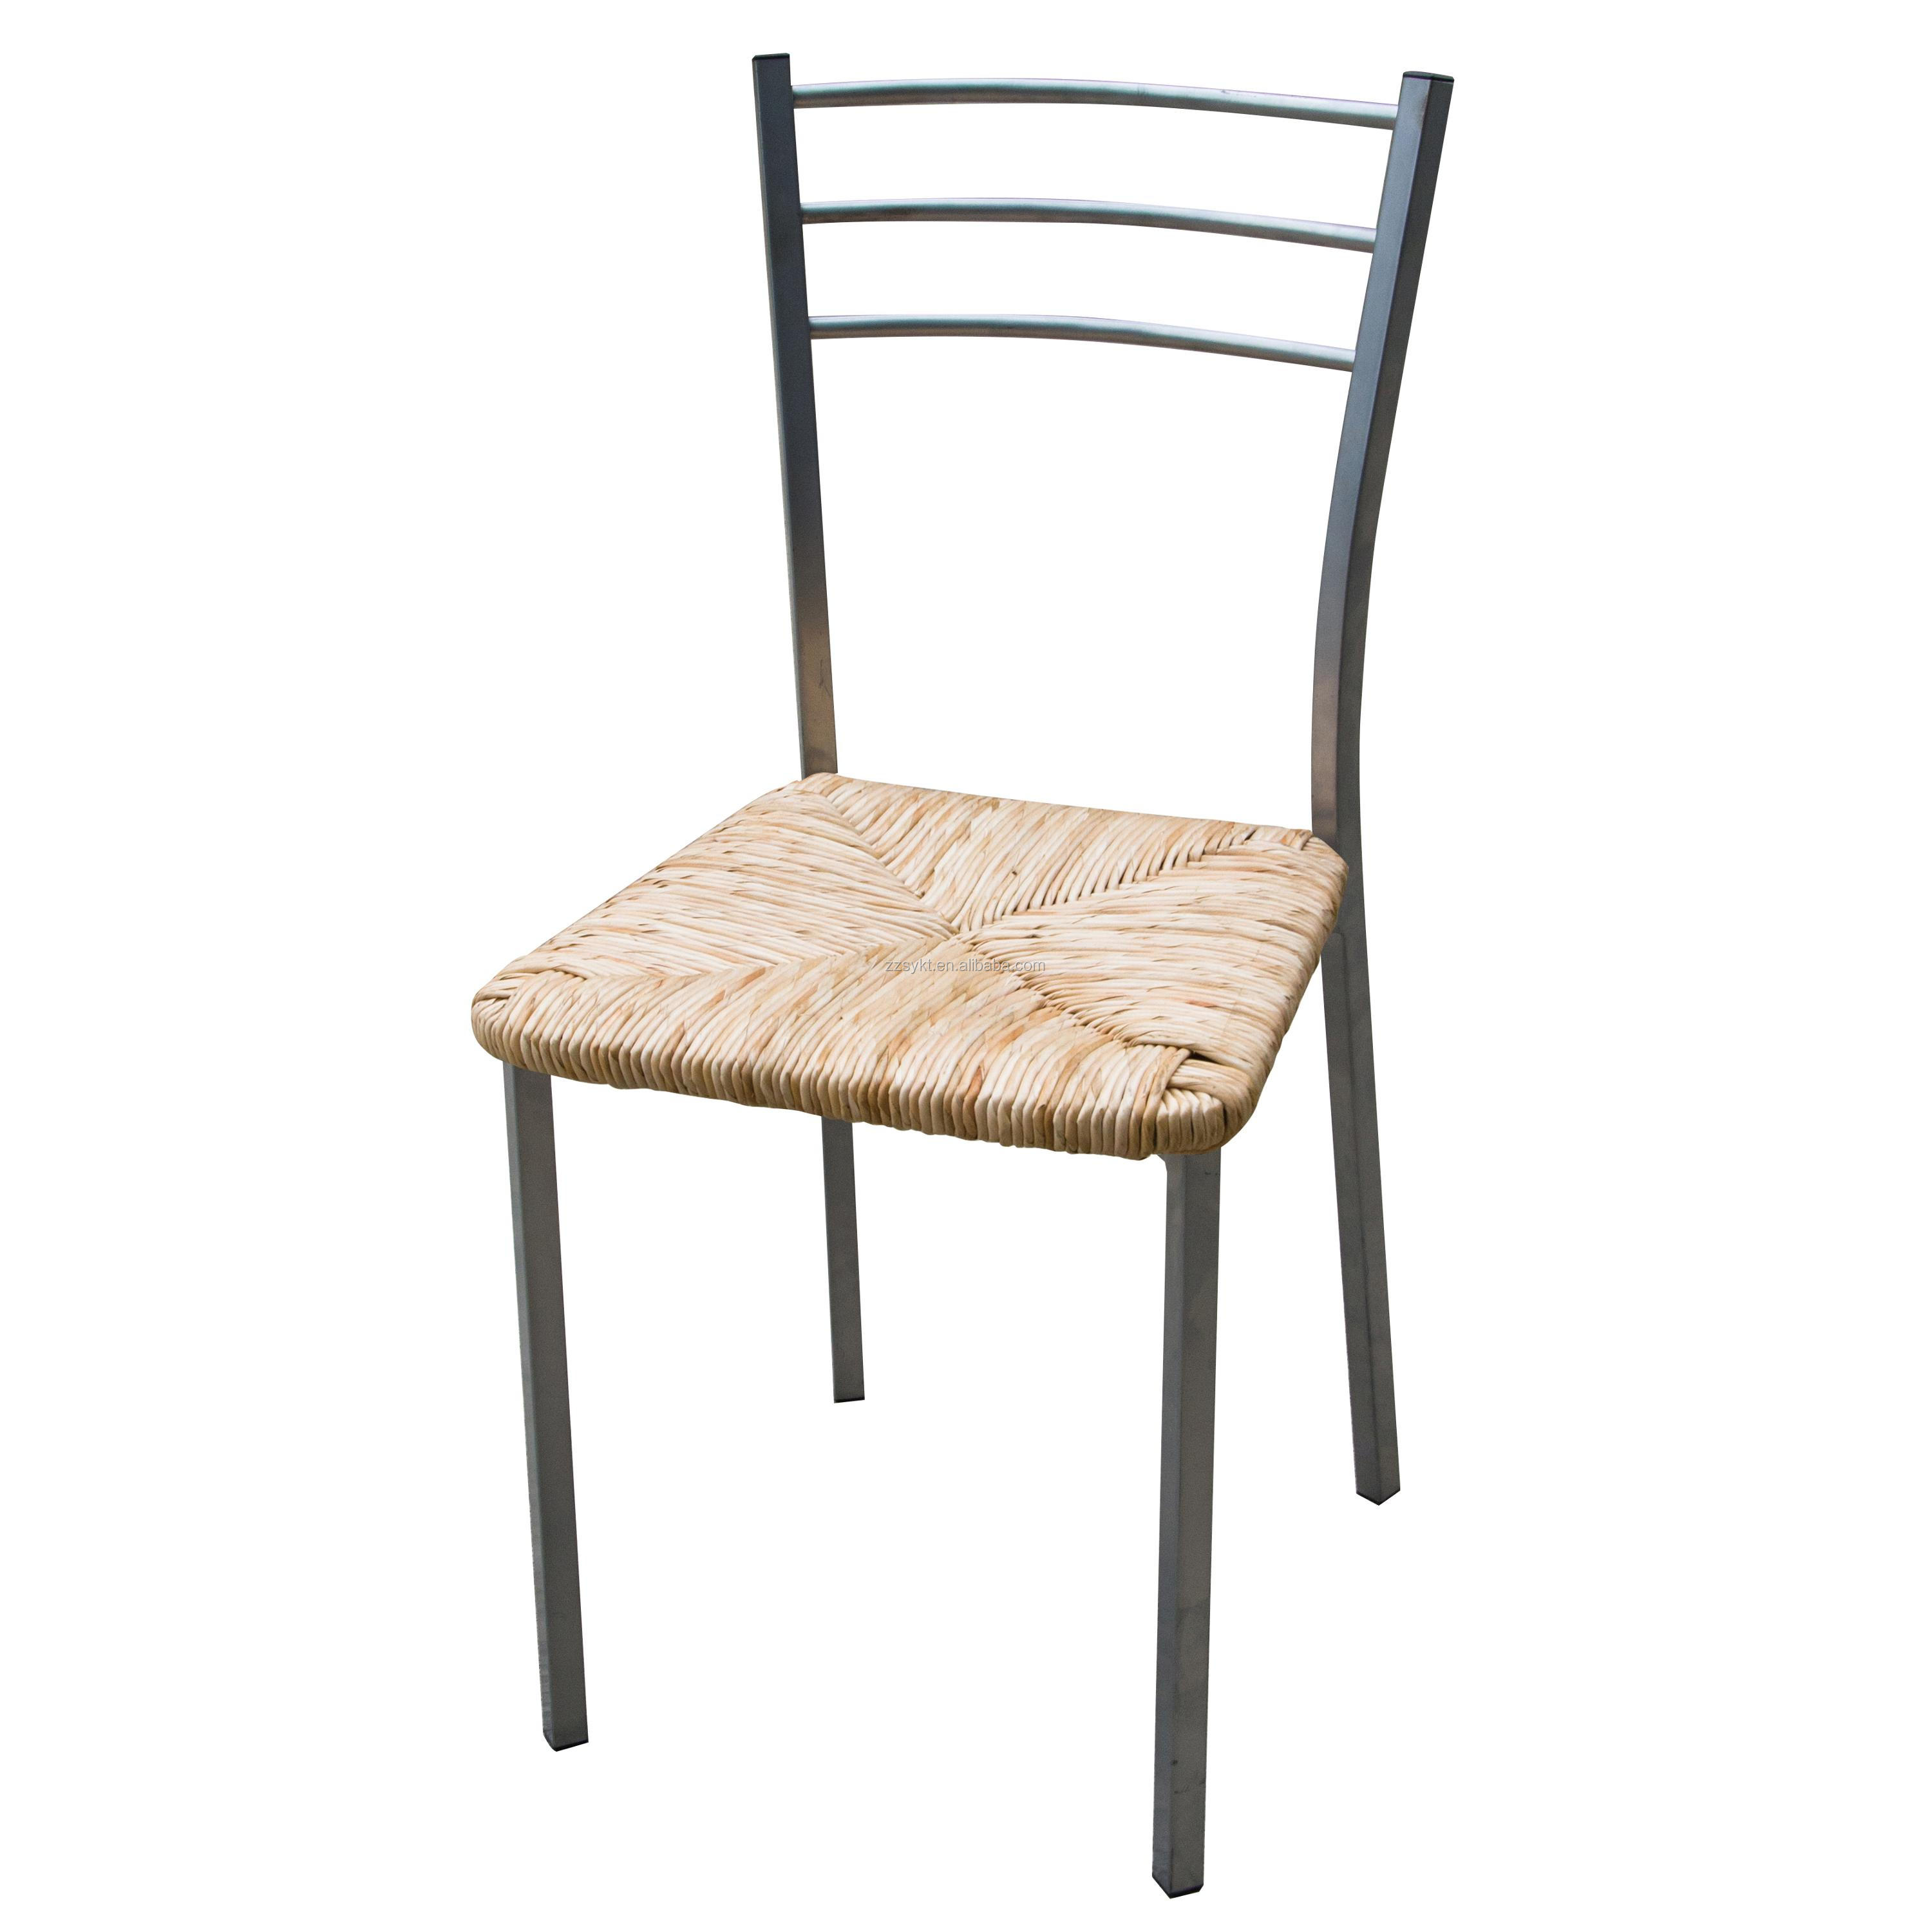 Cafeteria Chairs Cane Chairs With Metal Frame Wholesale   Buy Cafeteria  Cane Chairs,Metal Cane Chairs,Antique Cane Chair Product On Alibaba.com